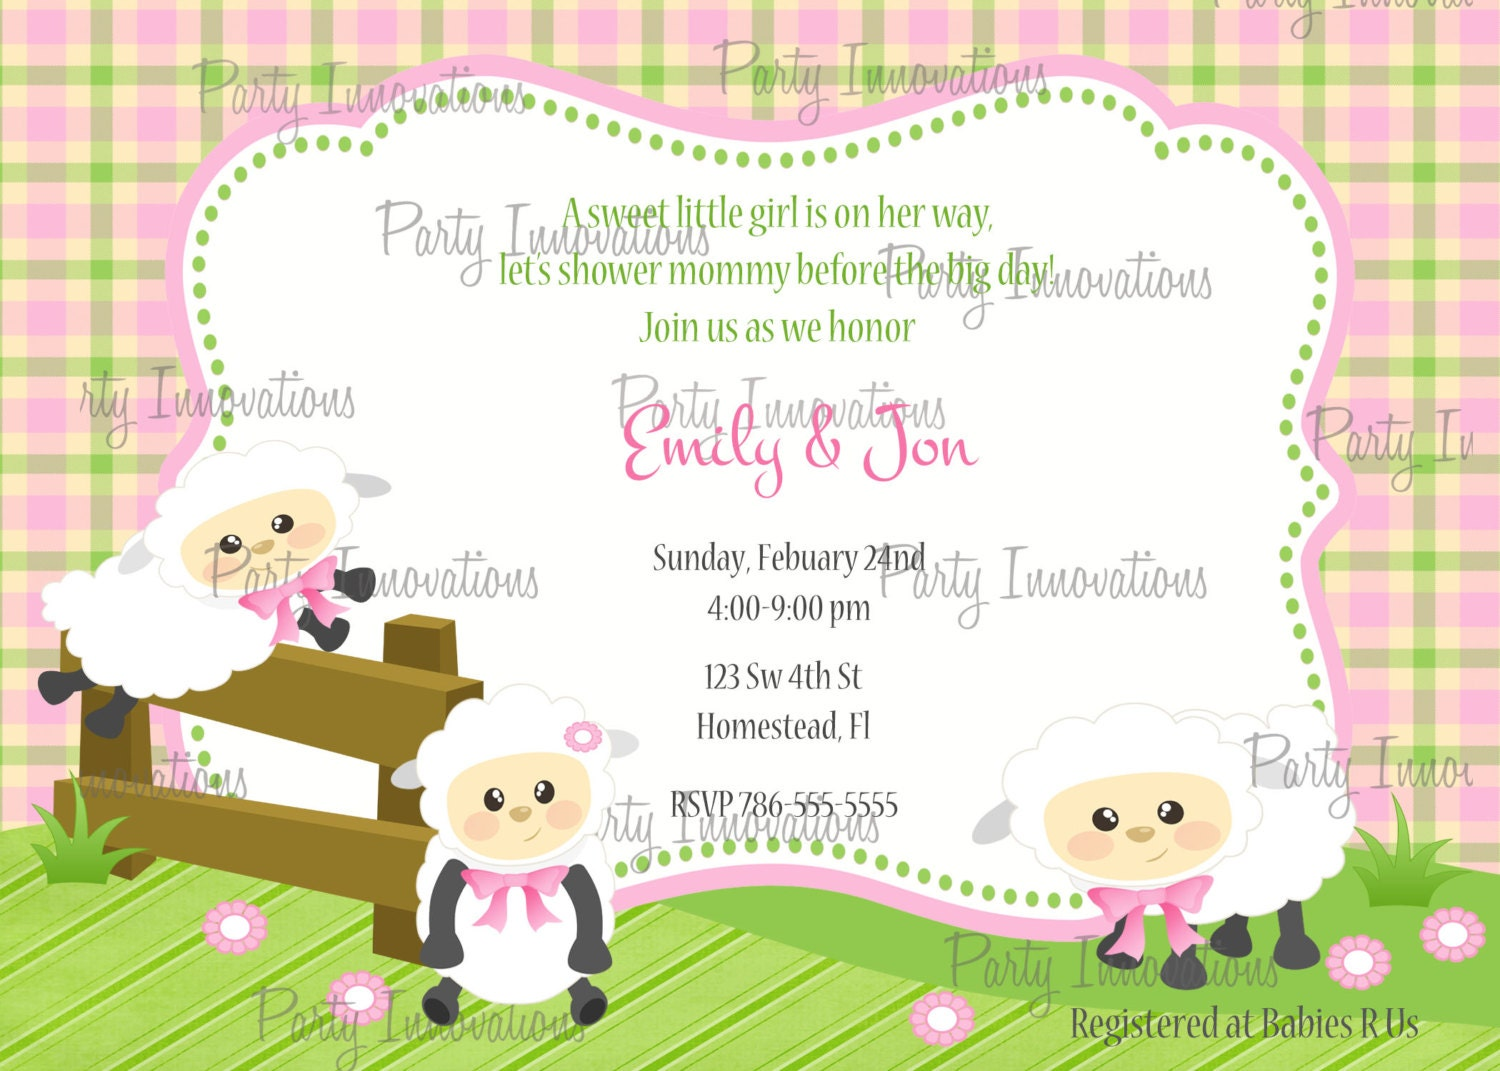 Baby Lamb Invitations is adorable invitation sample